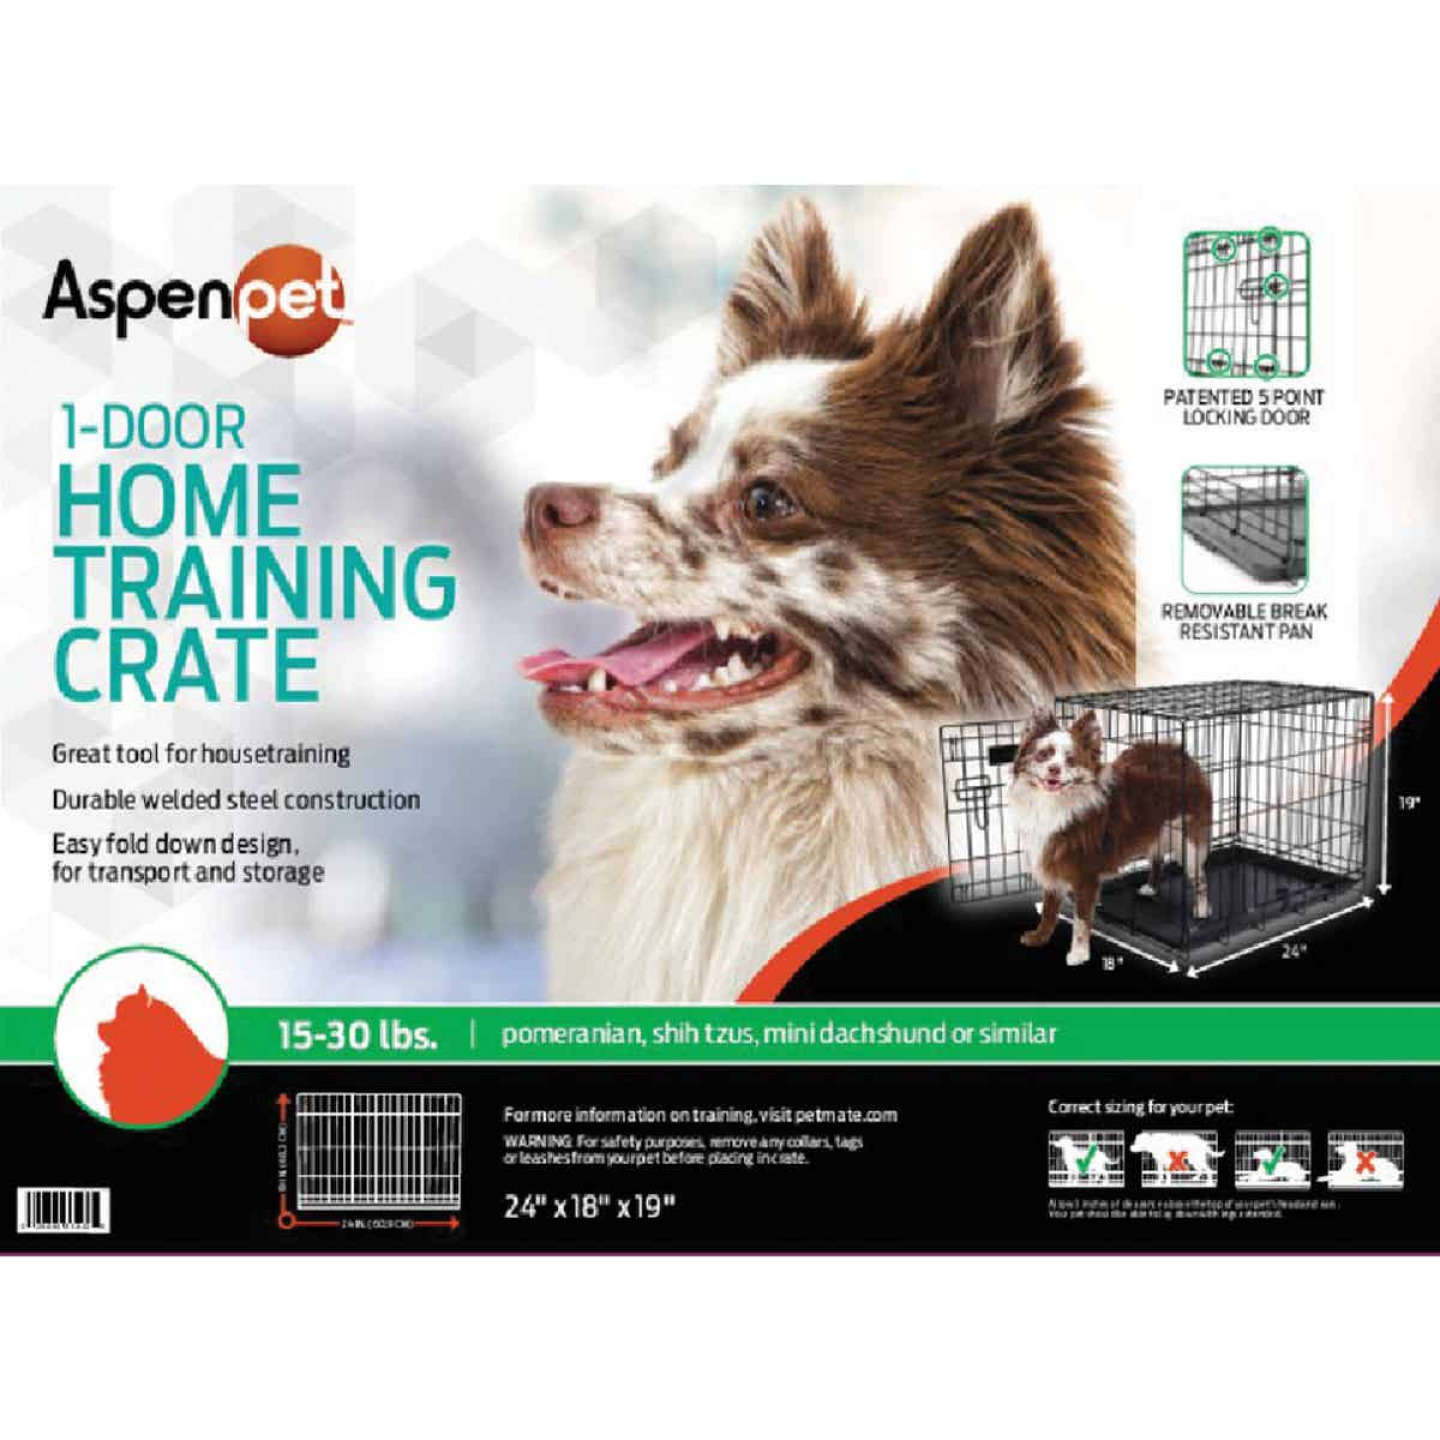 Petmate Aspen Pet 17 In. W. x 19.4 In. H. x 24.6 In. L. Heavy-Gauge Wire Indoor Training Dog Crate Image 2